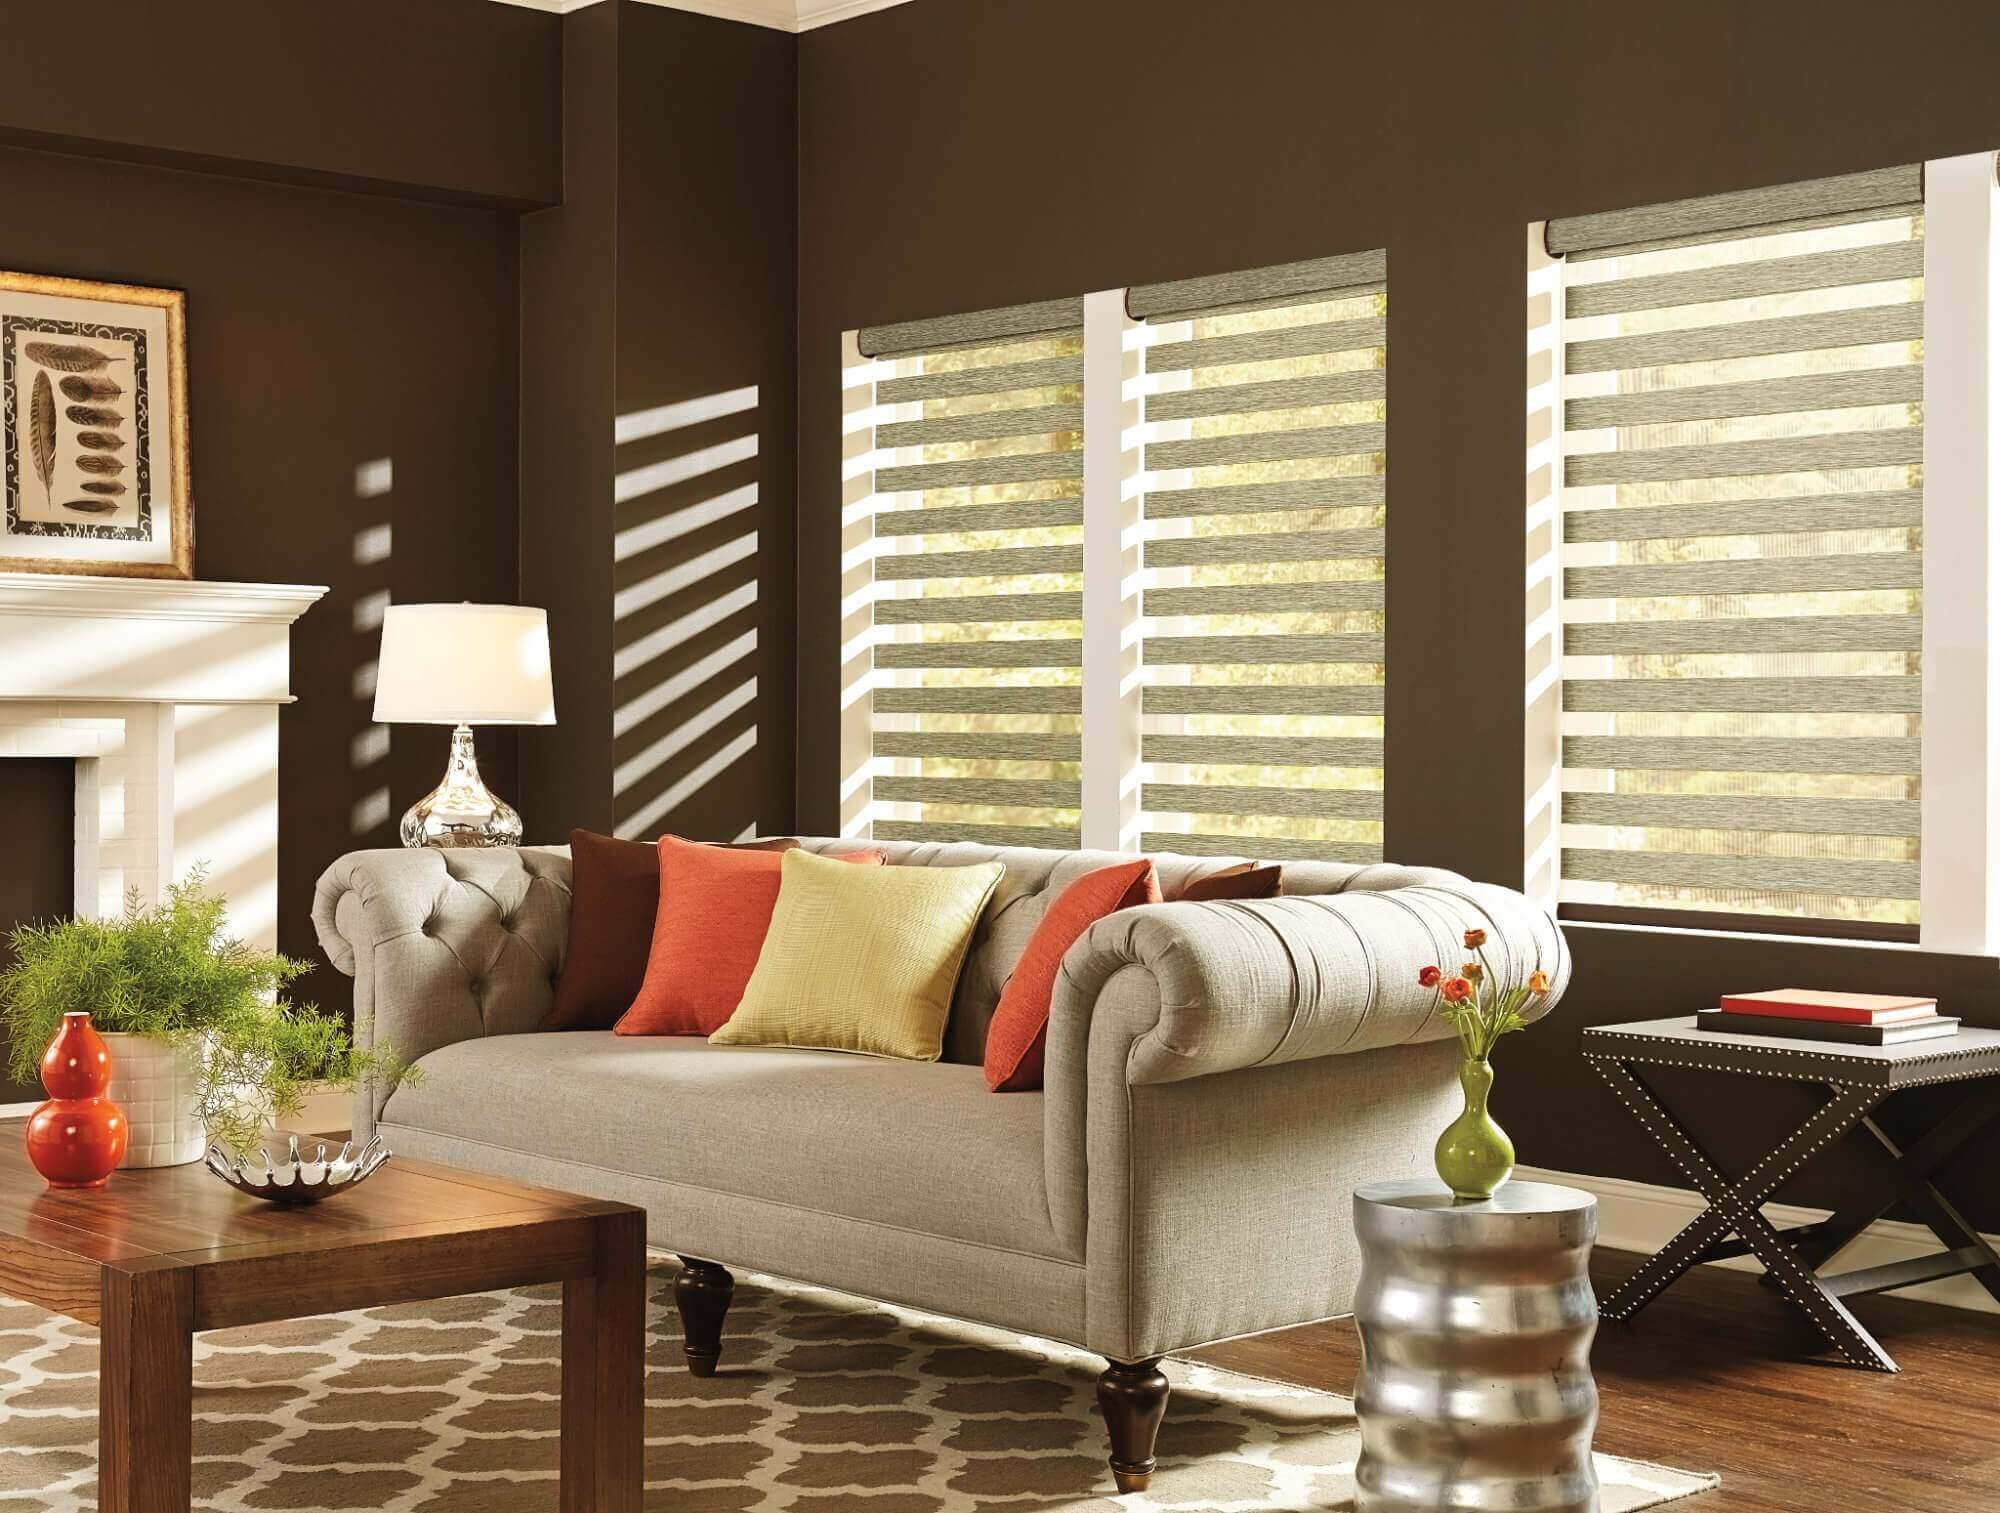 Layered shades have pieces of fabric that alternated between light filtering and solid opacities and are beautiful window treatments for light control.